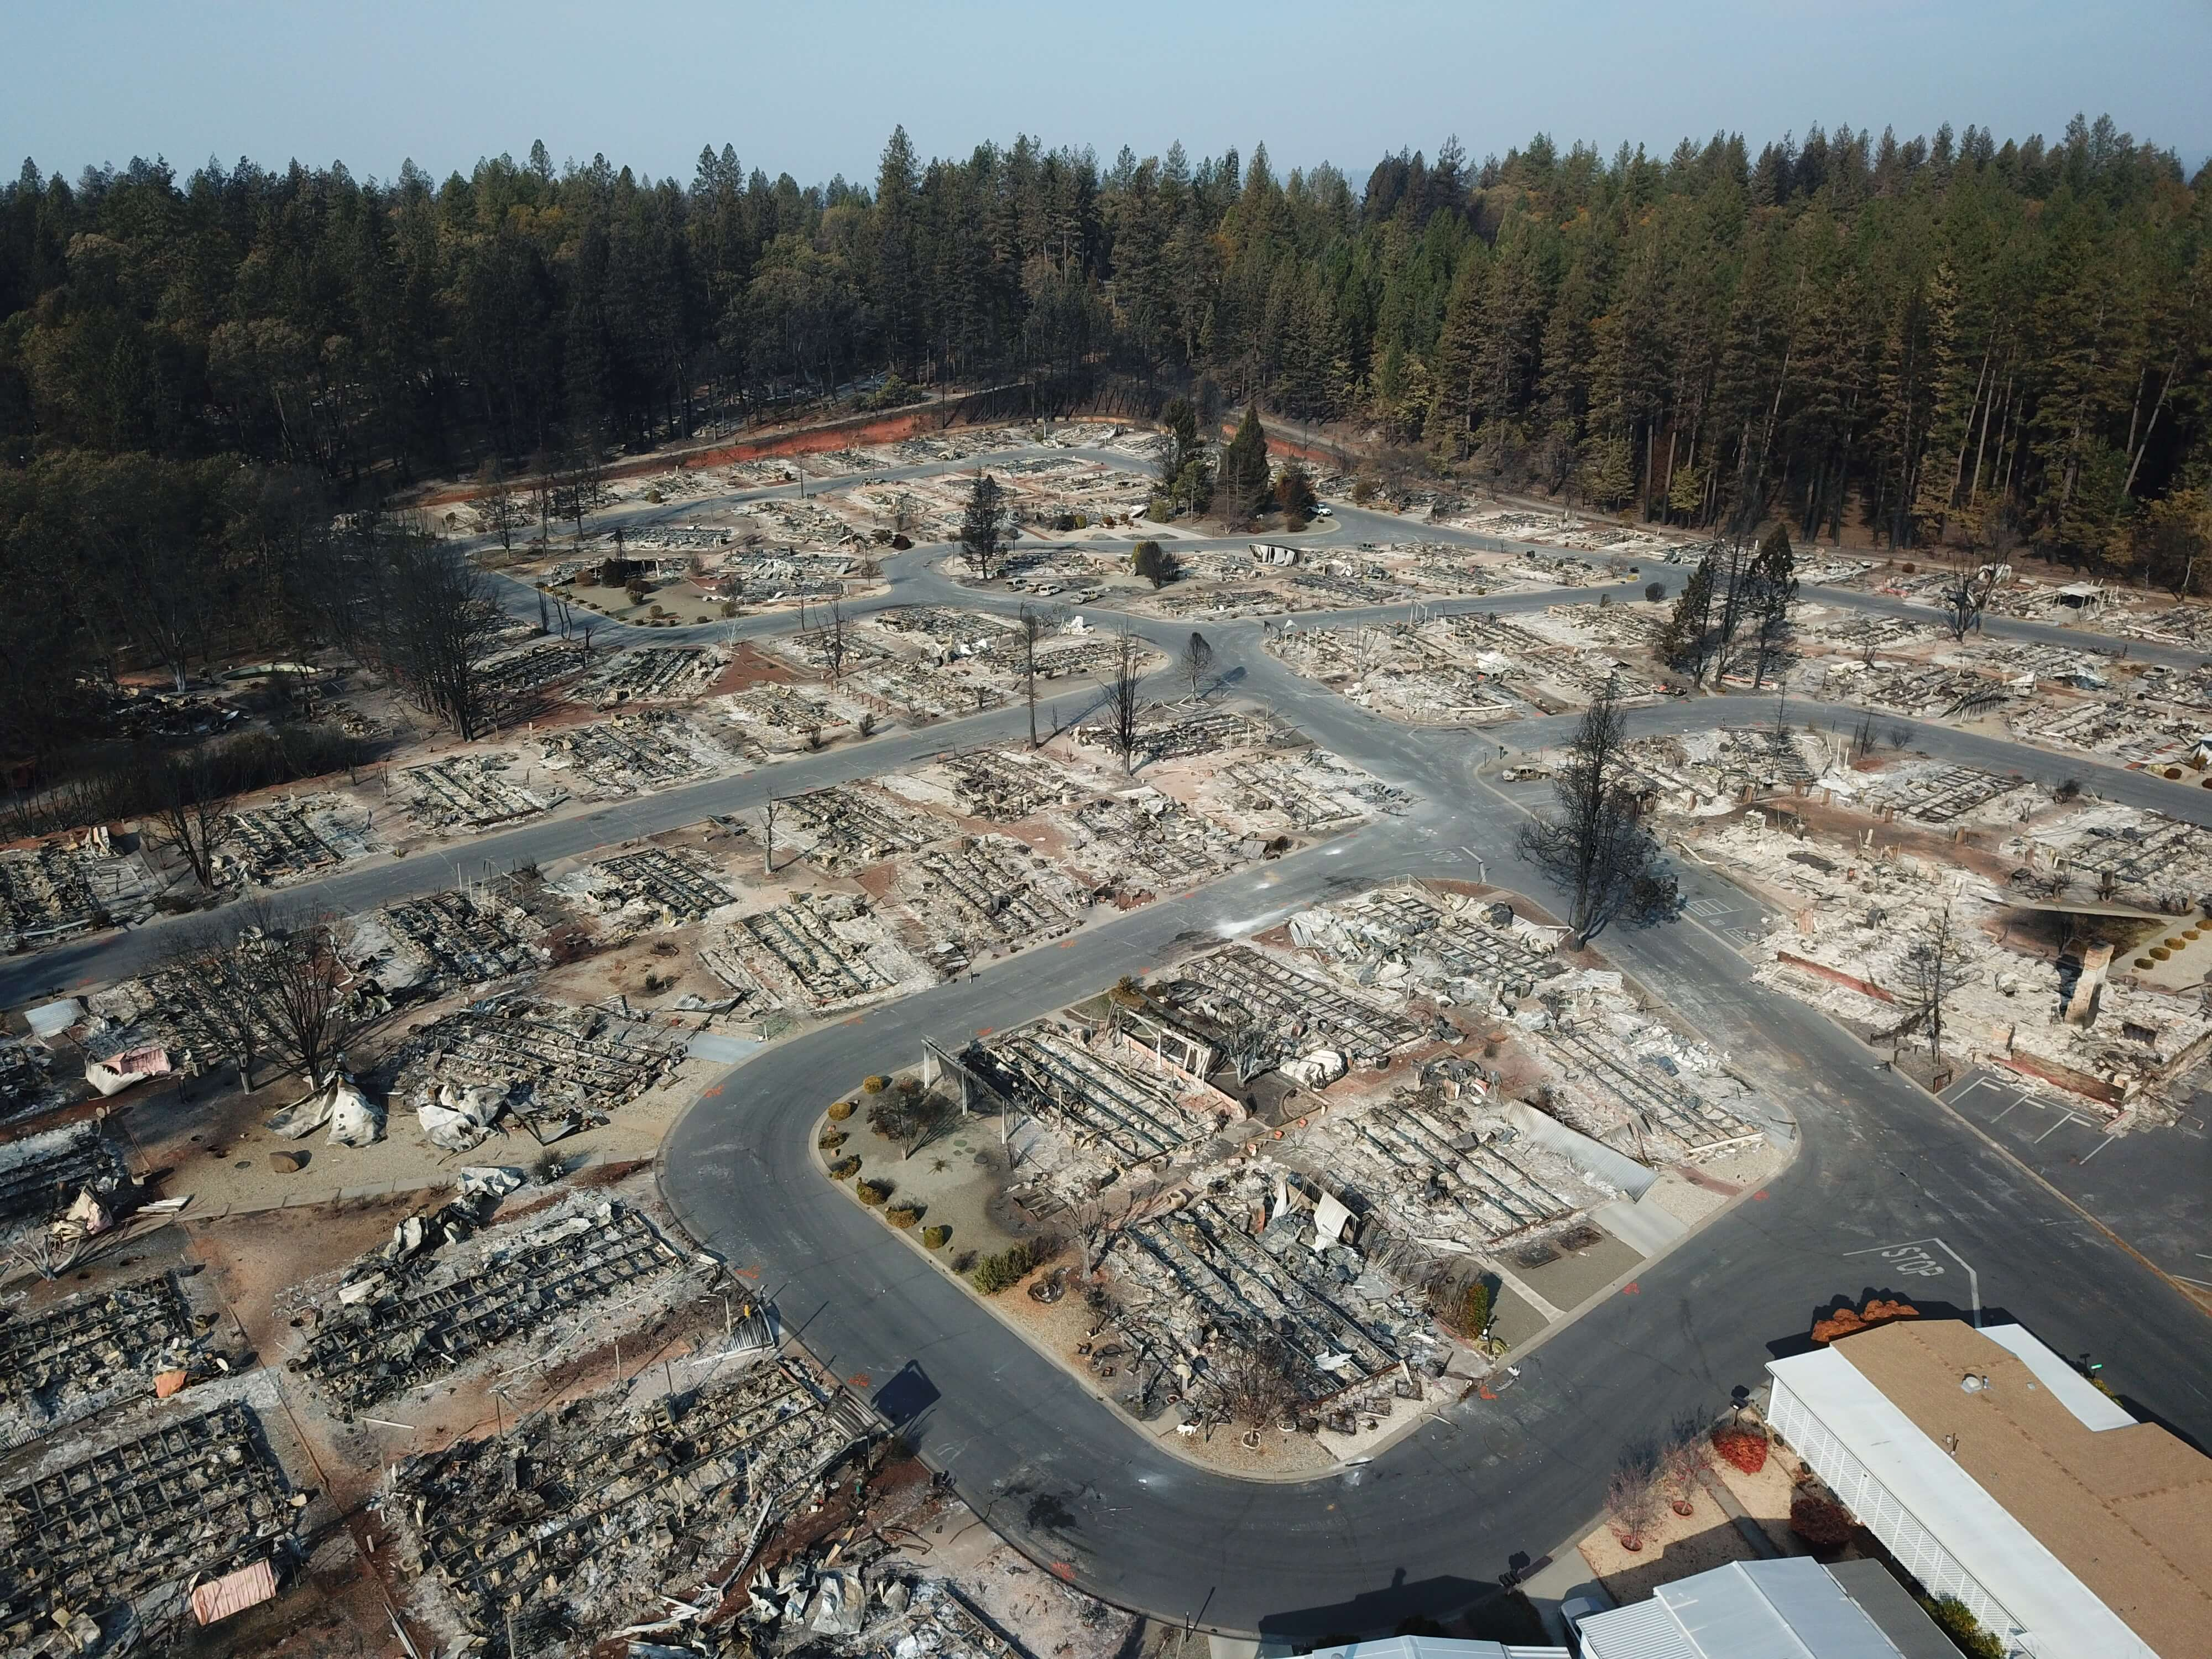 Aerial view of camp fire